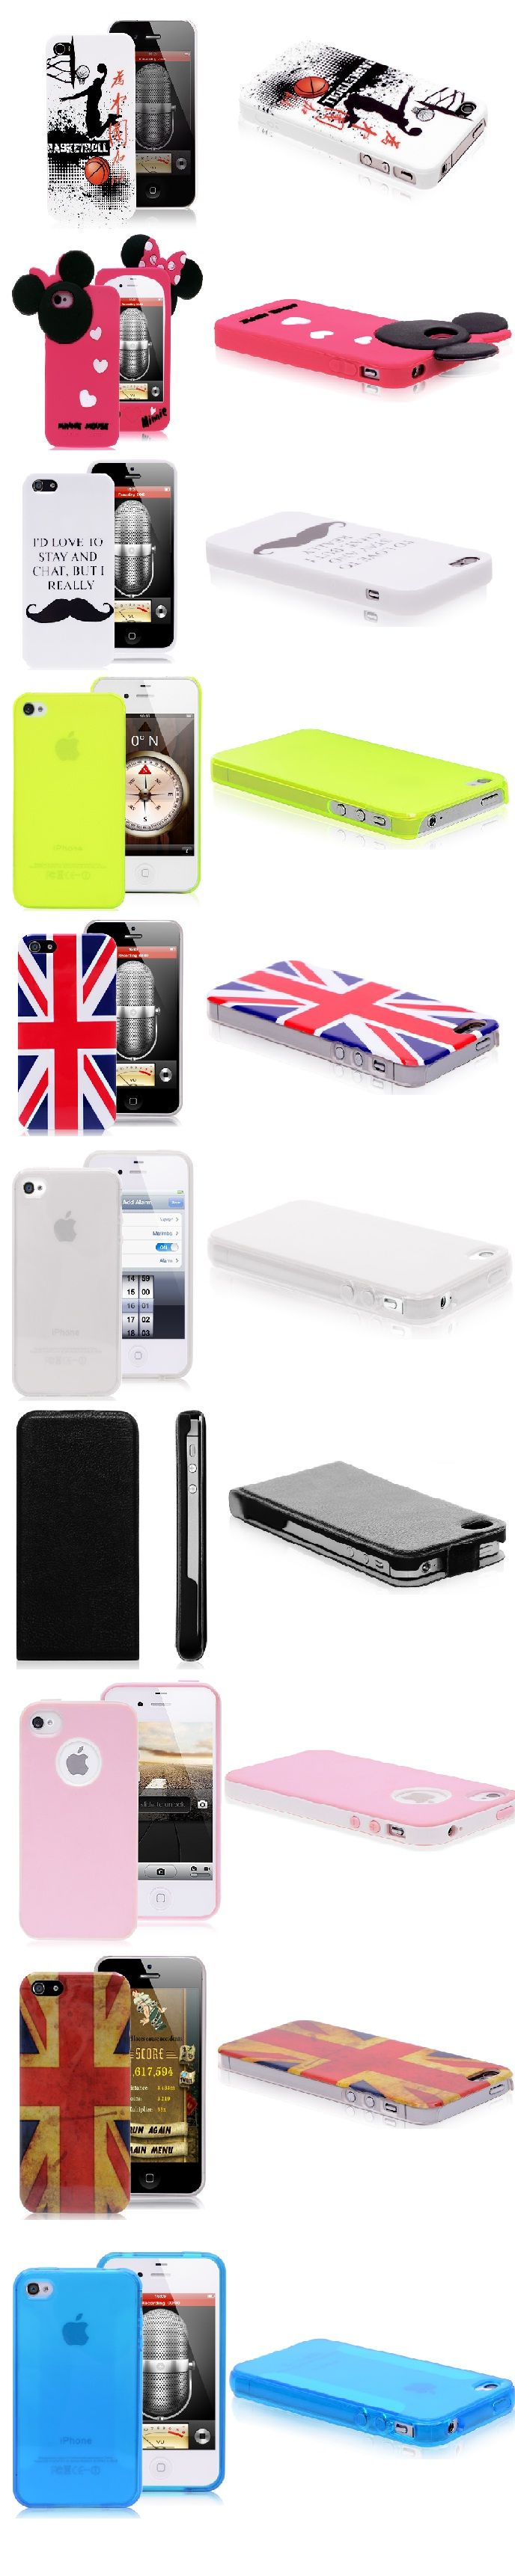 iPhone 4 cases - low prices , free shipping #iPhone4Cases #iPhone4 #Cases #Cellz.com